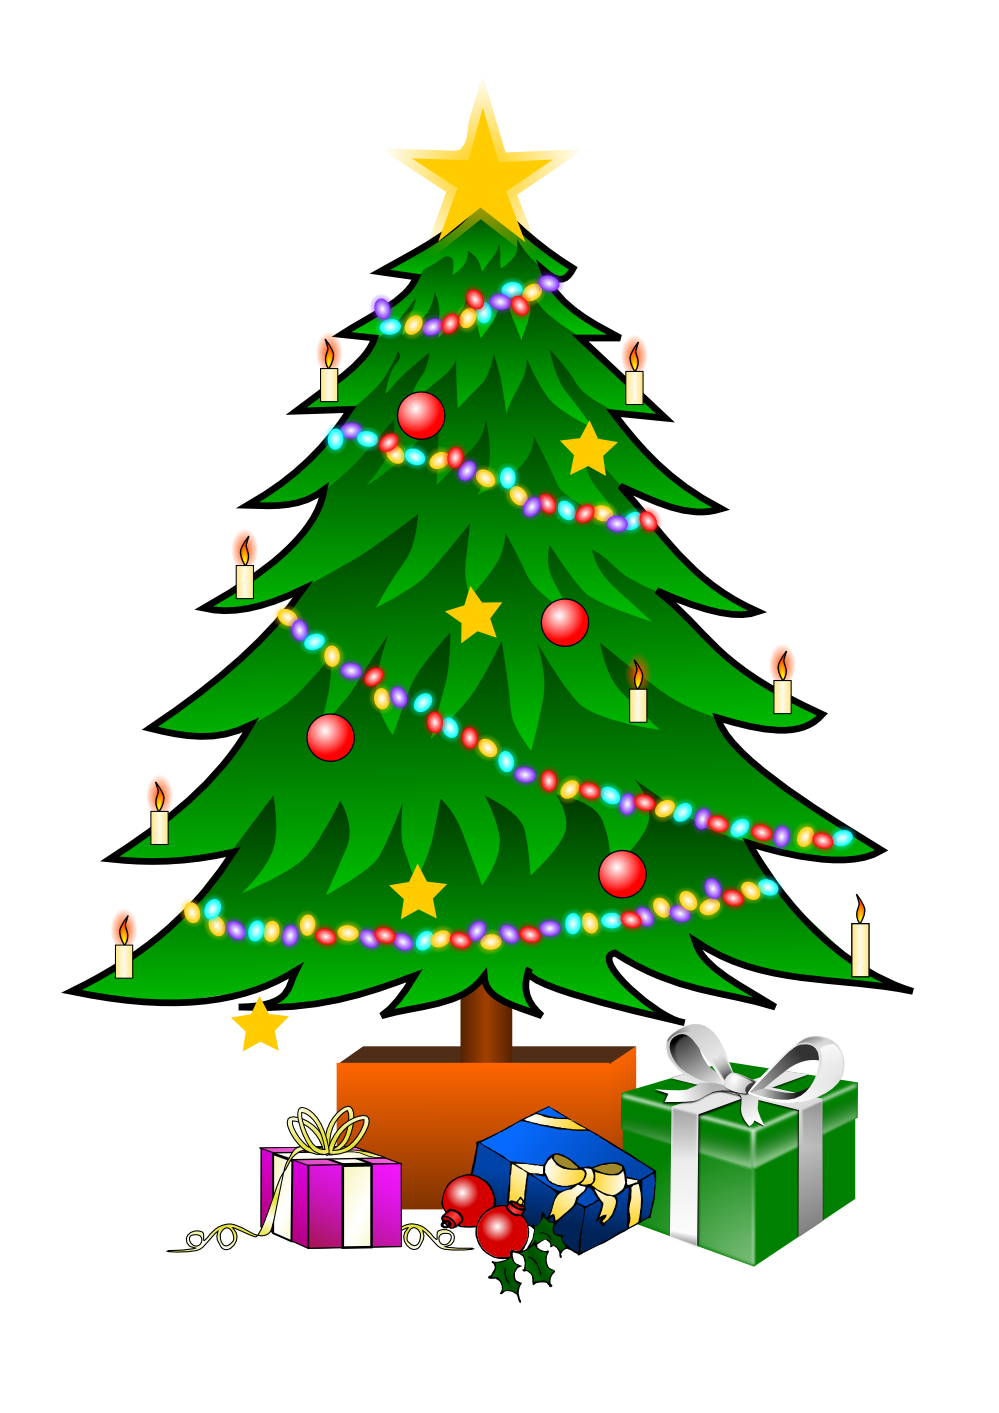 Christmas Tree Clip Art Watermark Clipart Panda Free Clipart